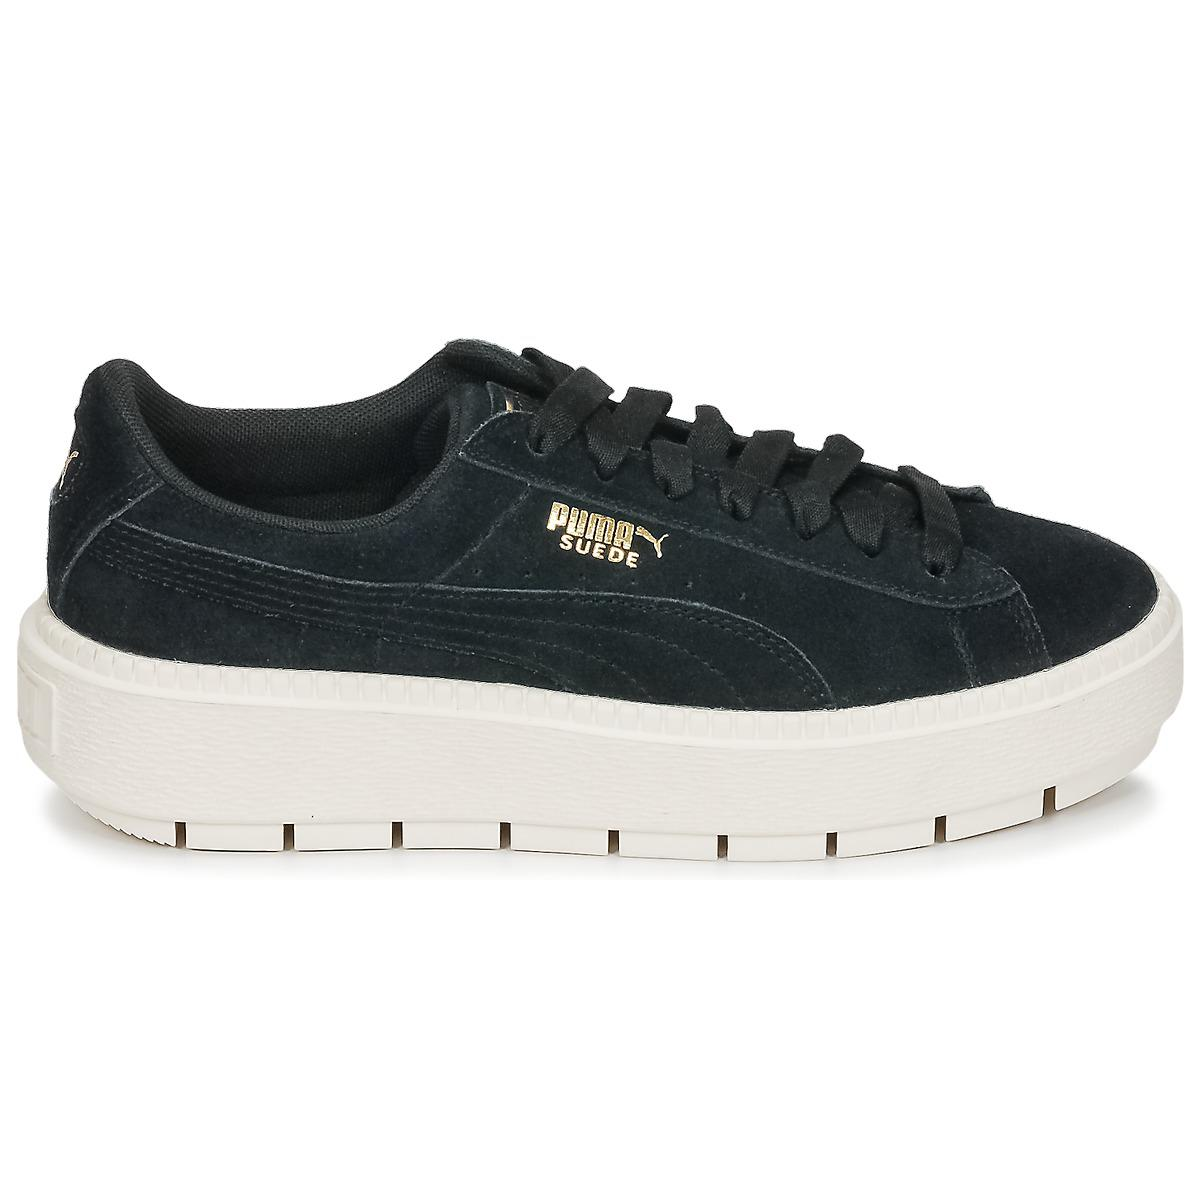 43d6f00b527d PUMA - Black Suede Platform Trace W s Shoes (trainers) - Lyst. View  fullscreen